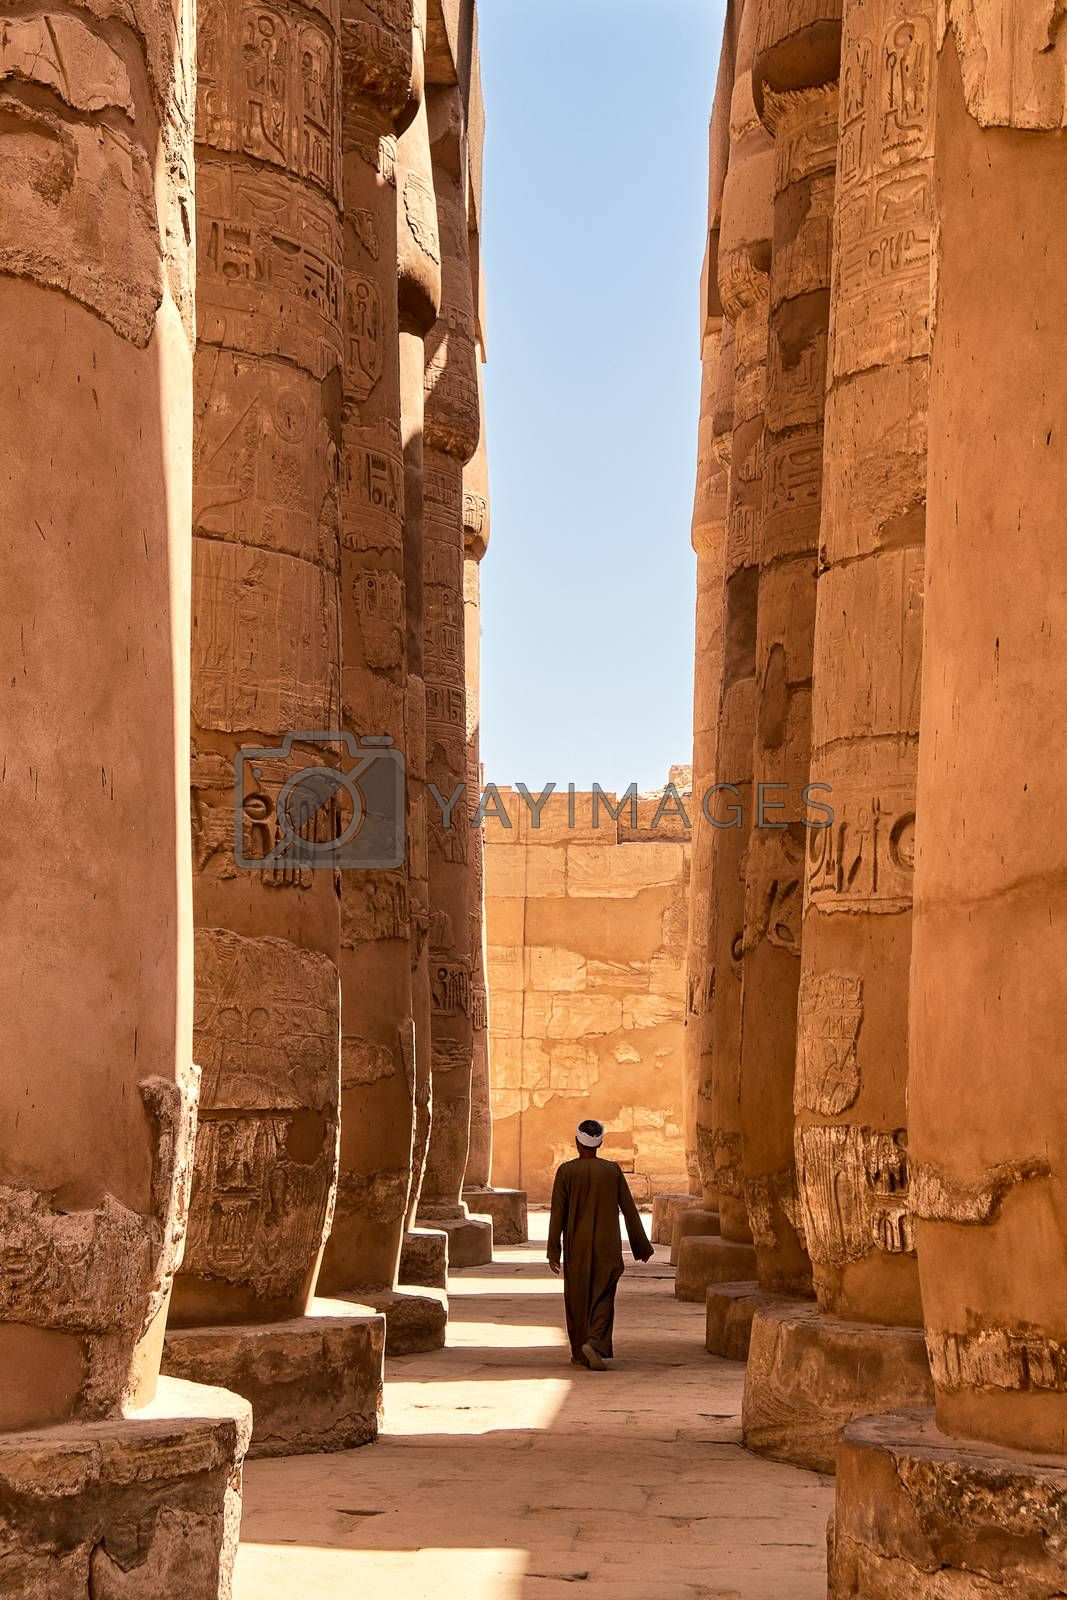 Massive pillars of the Great Hypostyle Hall in the Karnak temple complex (built about 1250 BC) in Luxor, Egypt